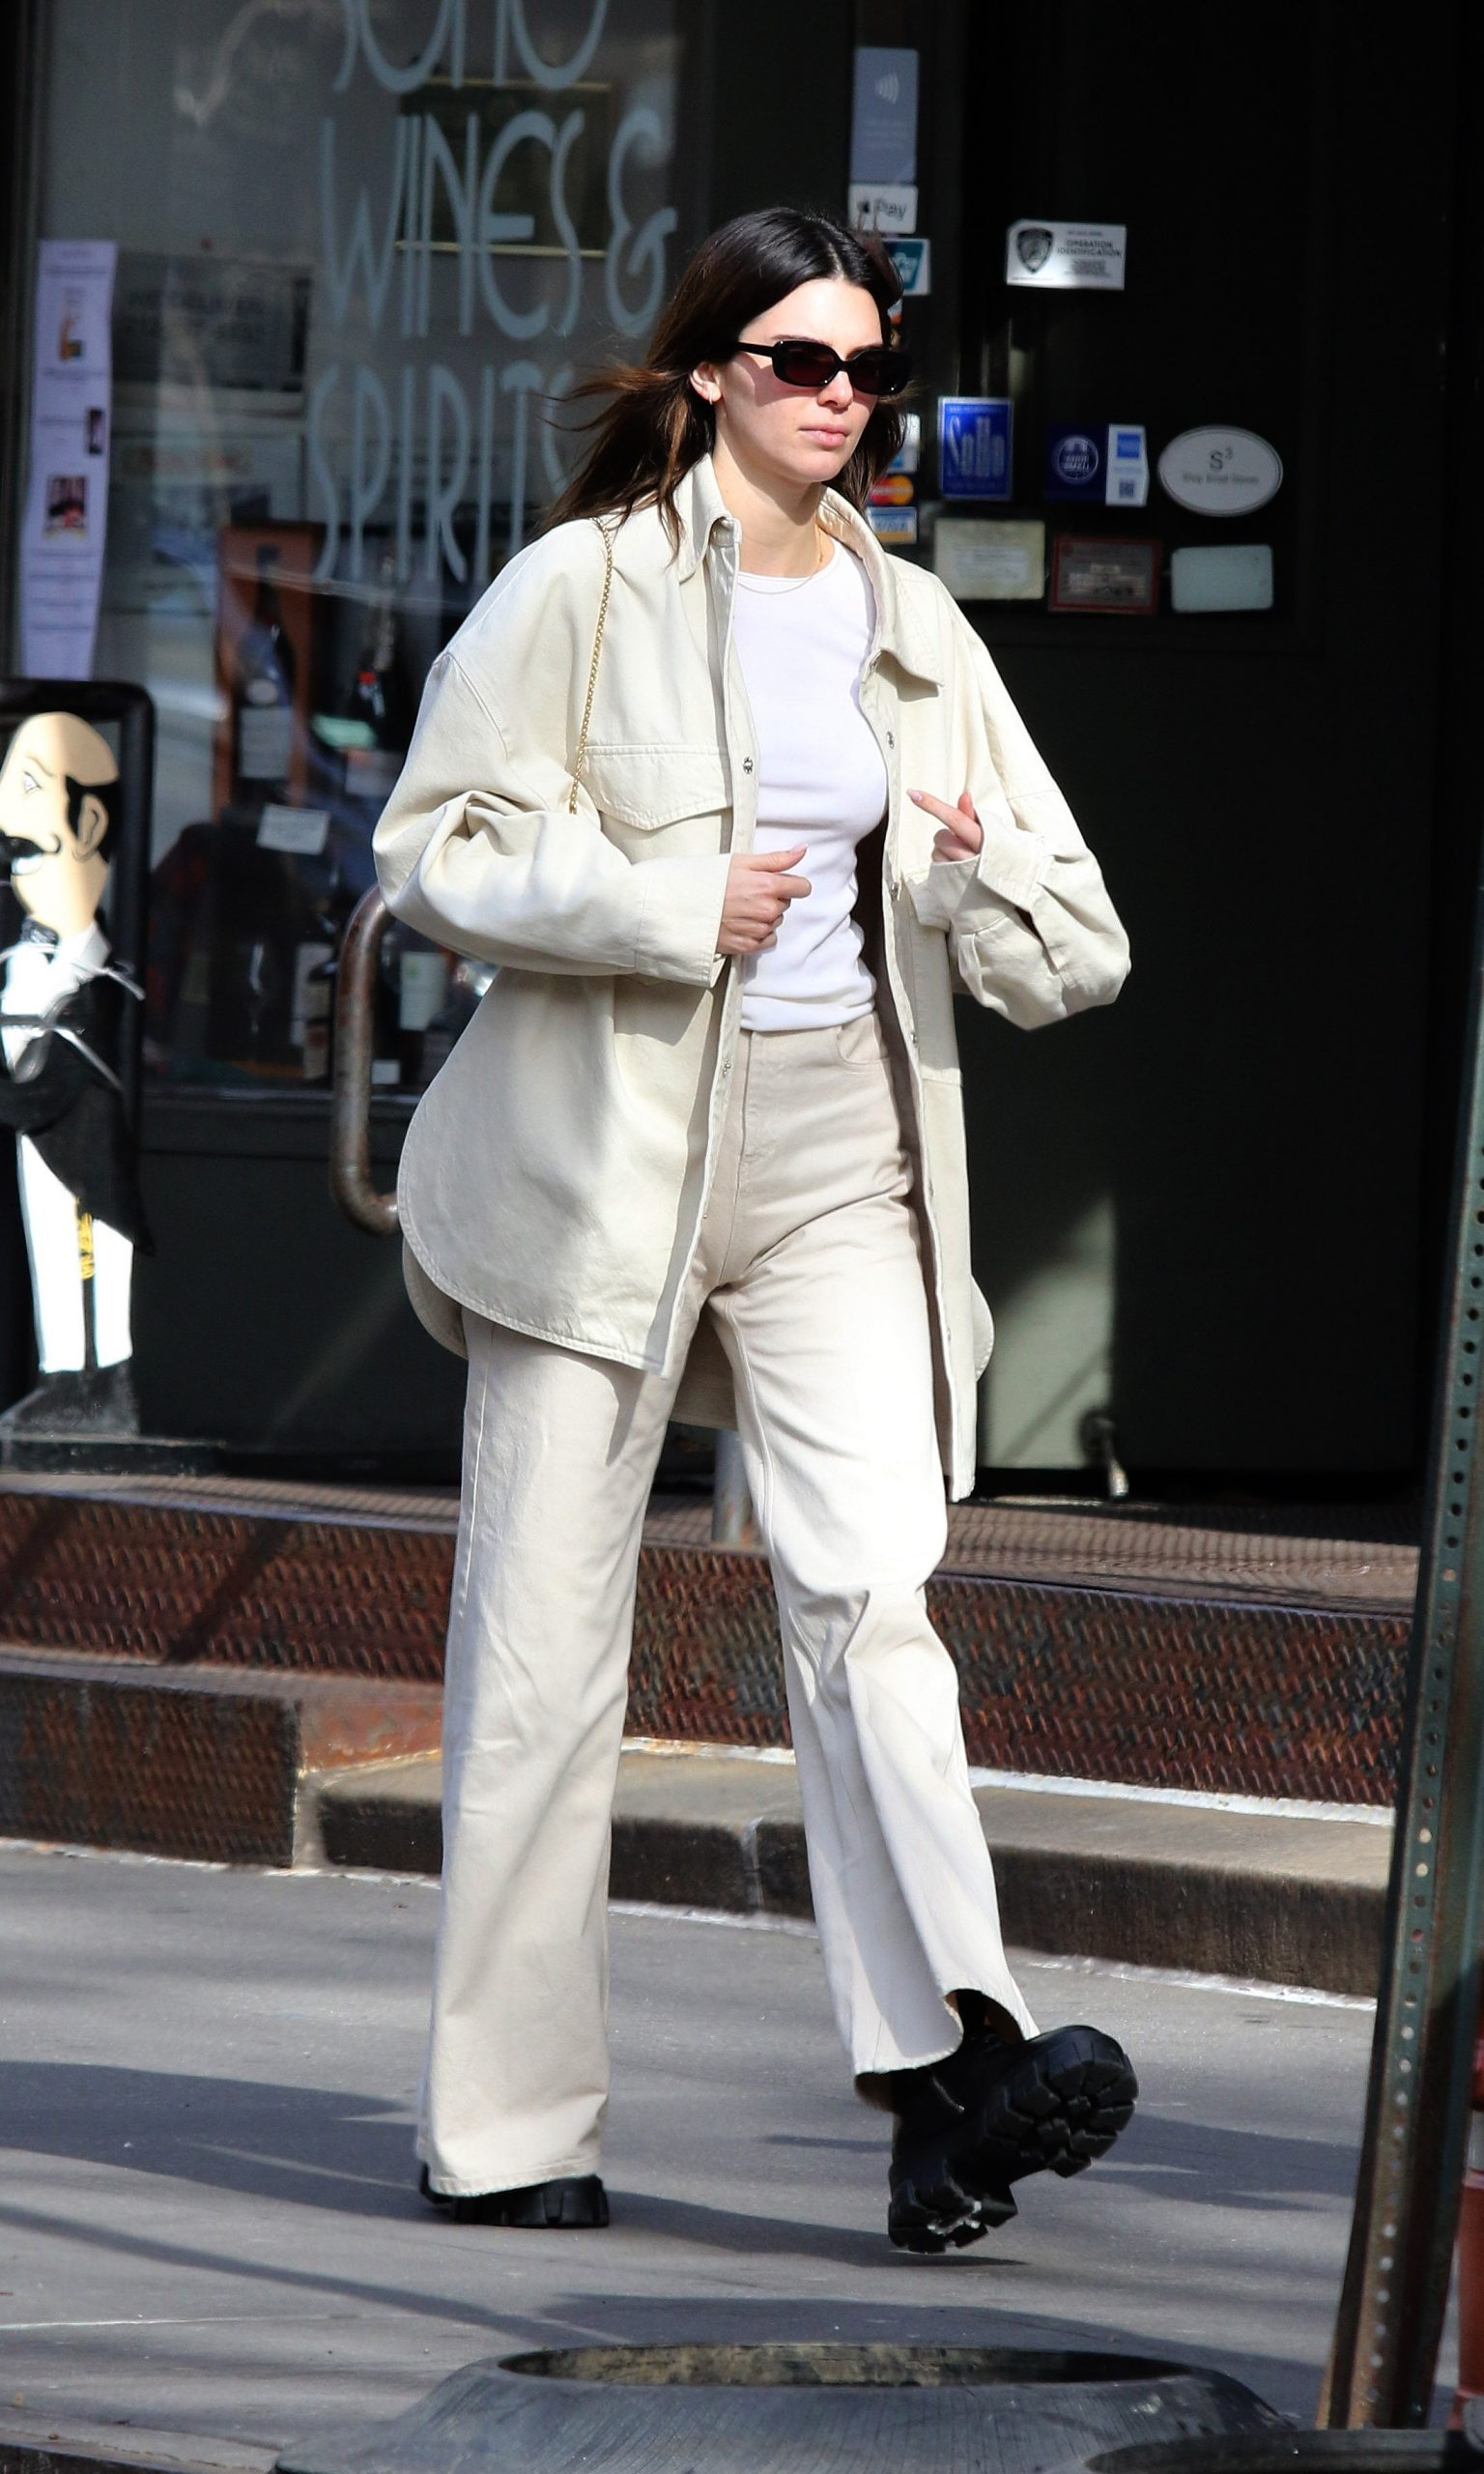 Kendall Jenner enjoys the nice weather as she goes for a walk with friends after having lunch in NYC